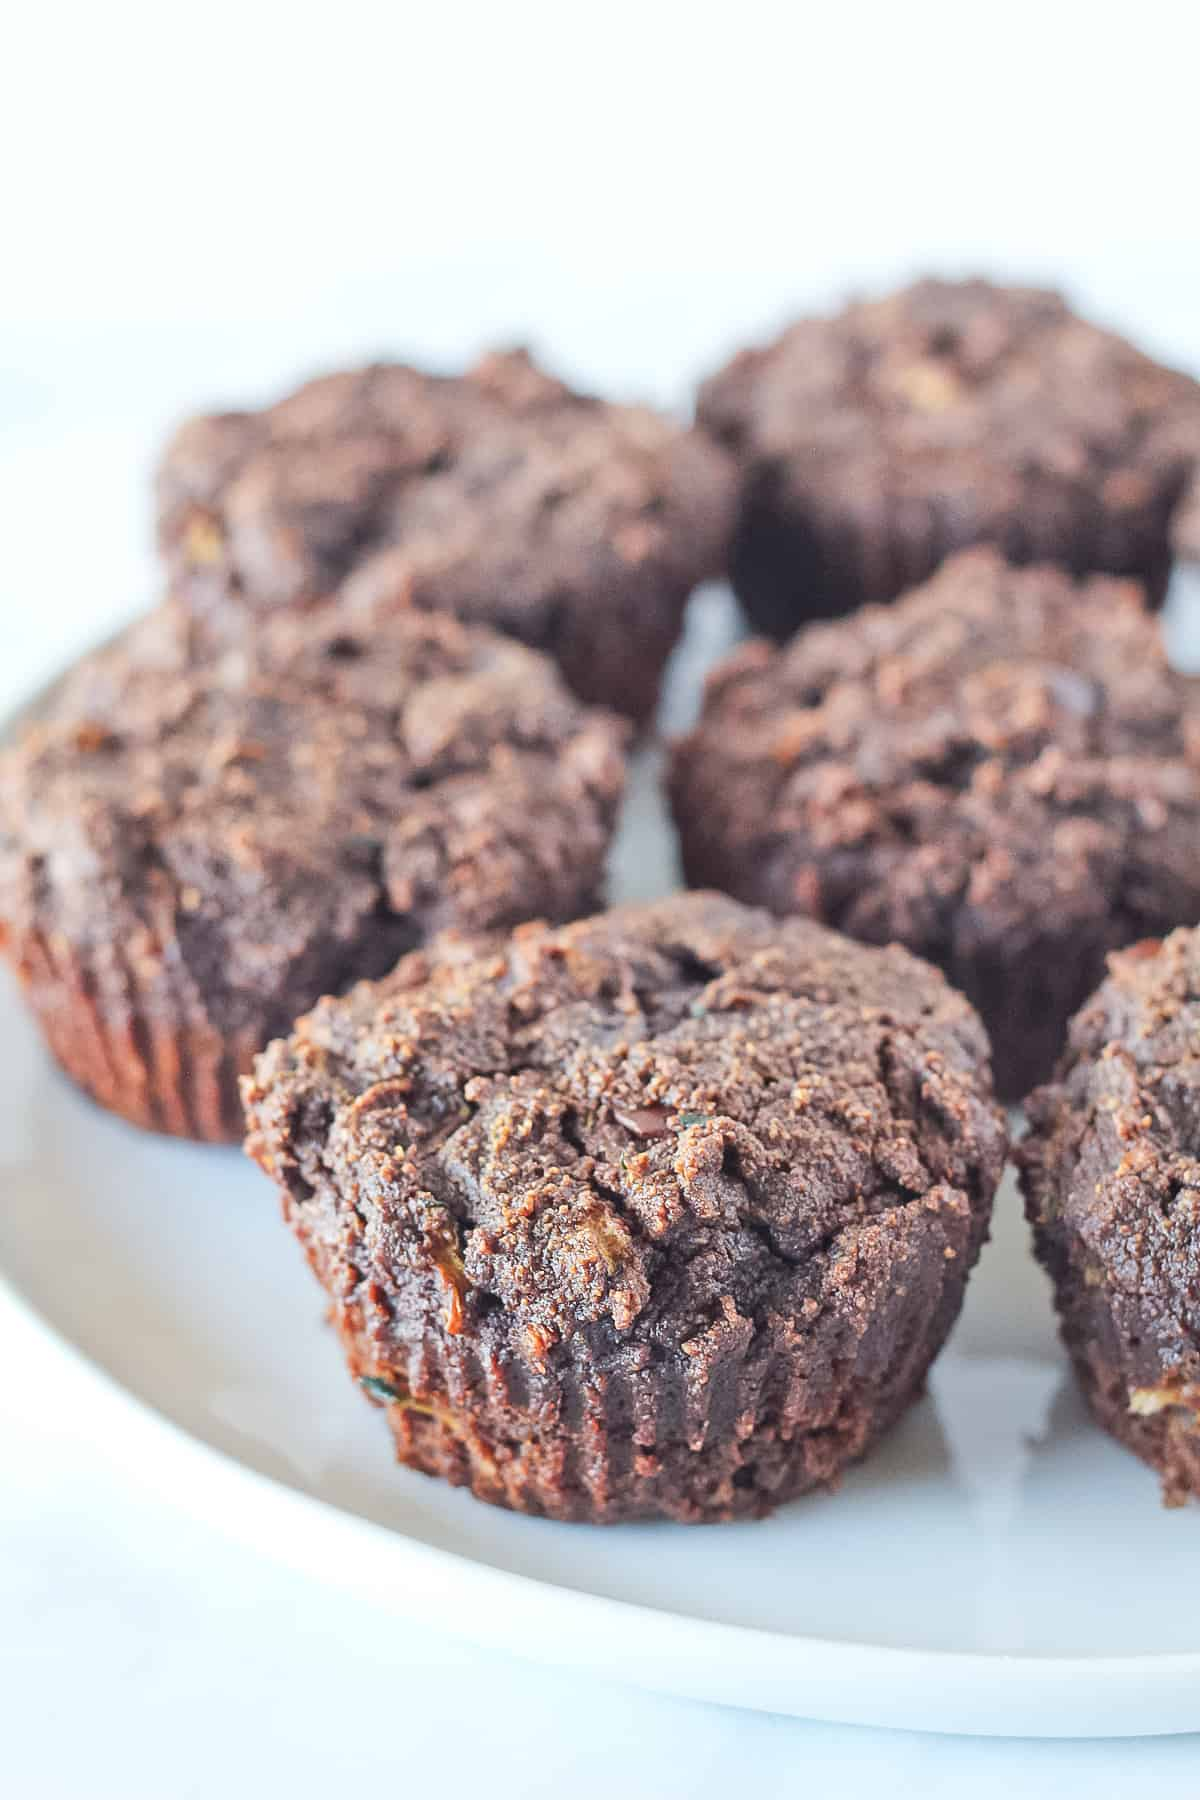 White plate of chocolate zucchini muffins.